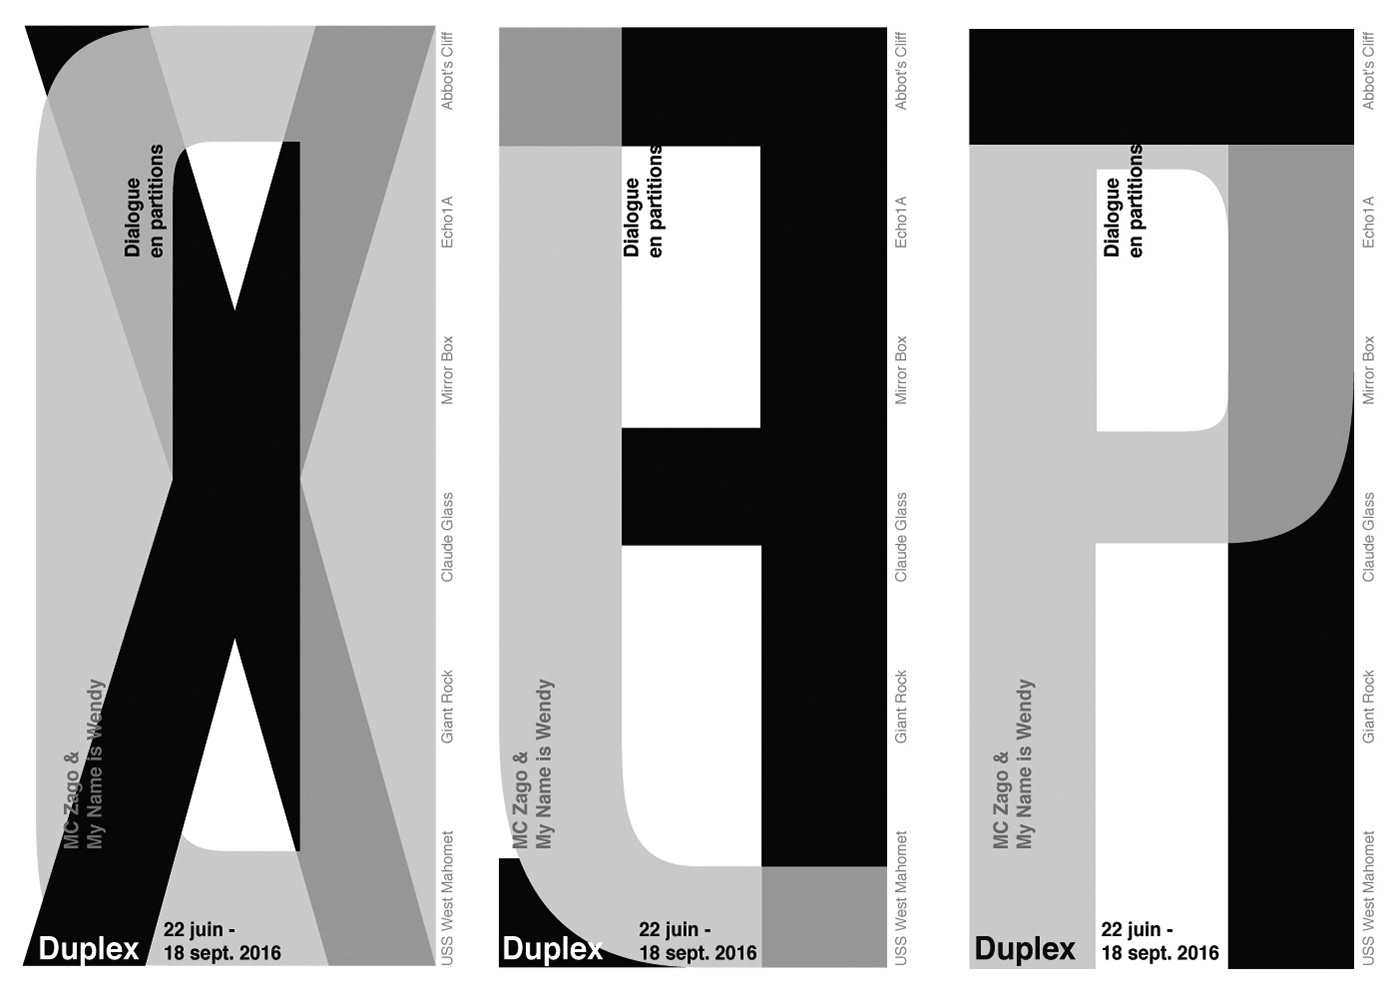 Layouts, graphic design and flyers for exhibition